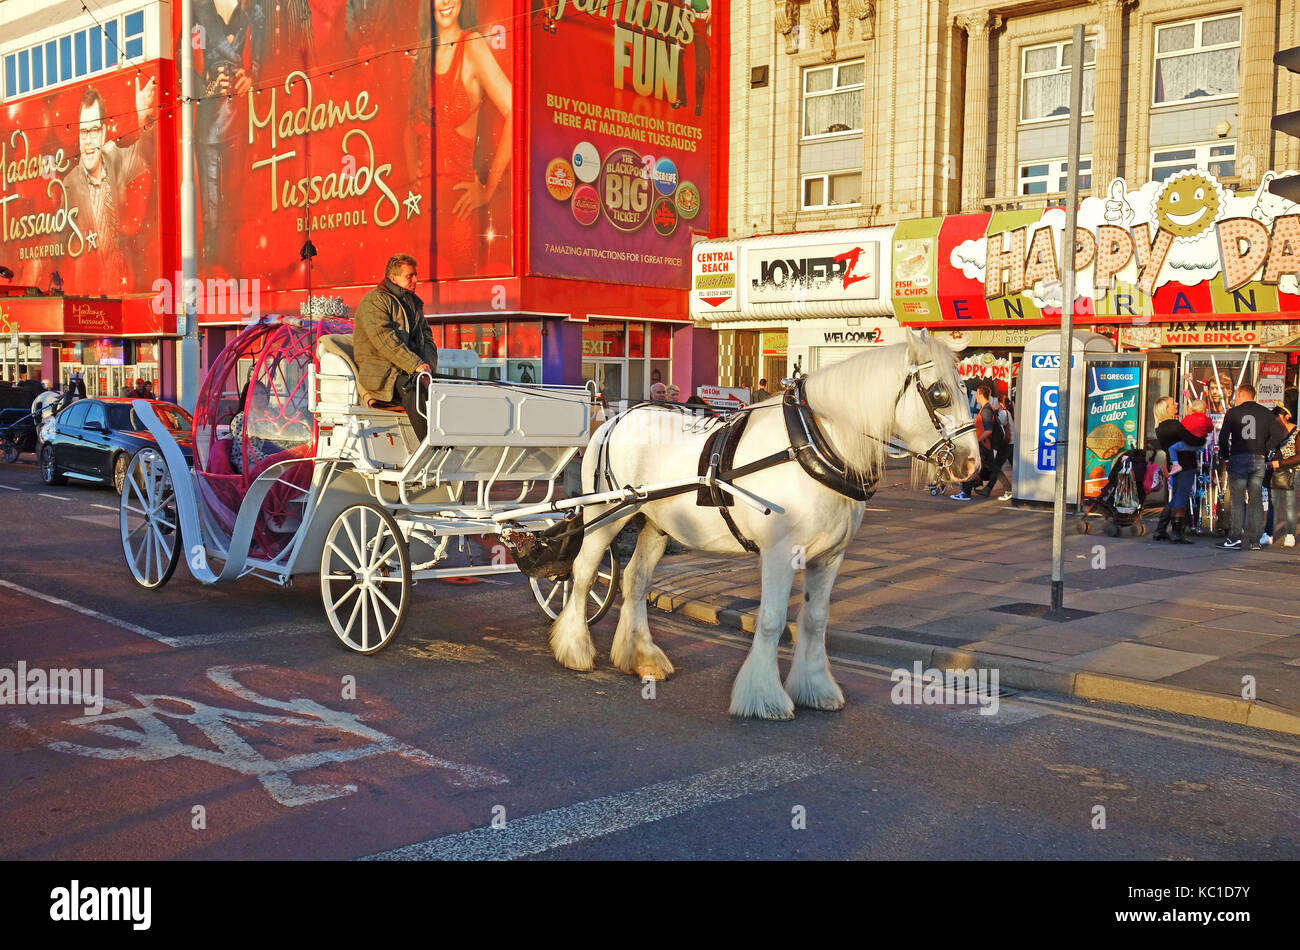 a horse drawn carriage ride along the golden mile in blackpool, england, uk. - Stock Image